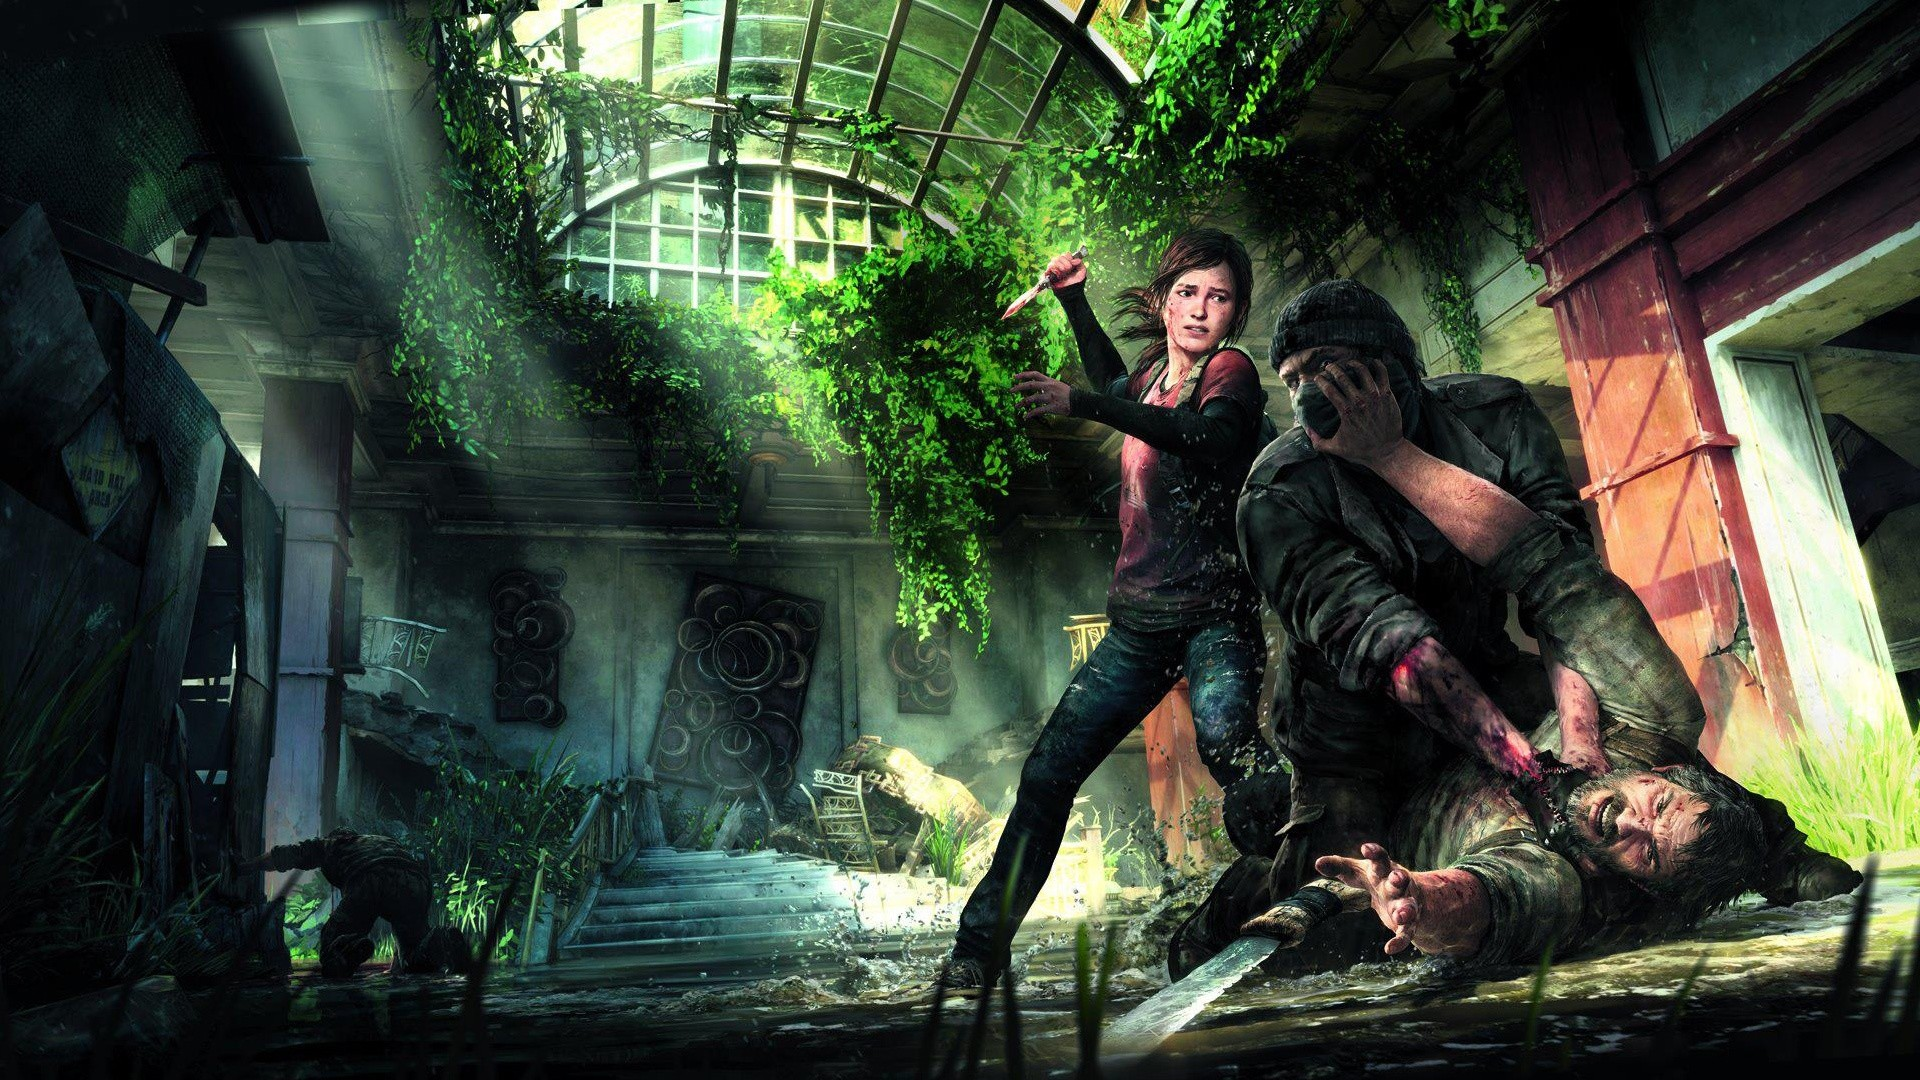 1920x1080 the last of us ps3 game wallpaper